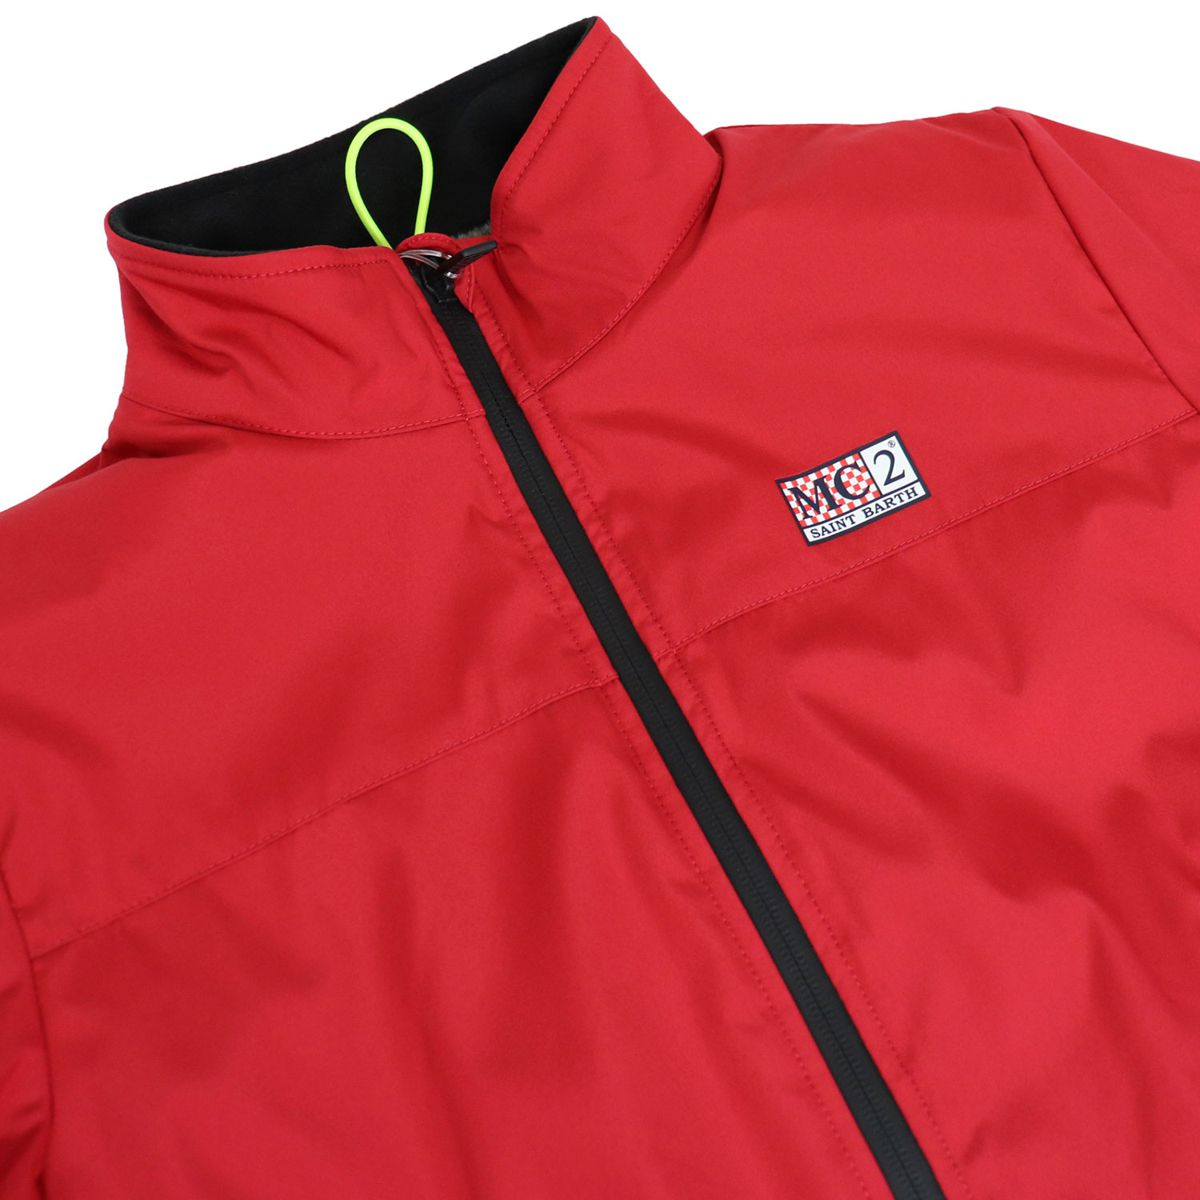 Windproof jacket with faux fur lining Red MC2 Saint Barth